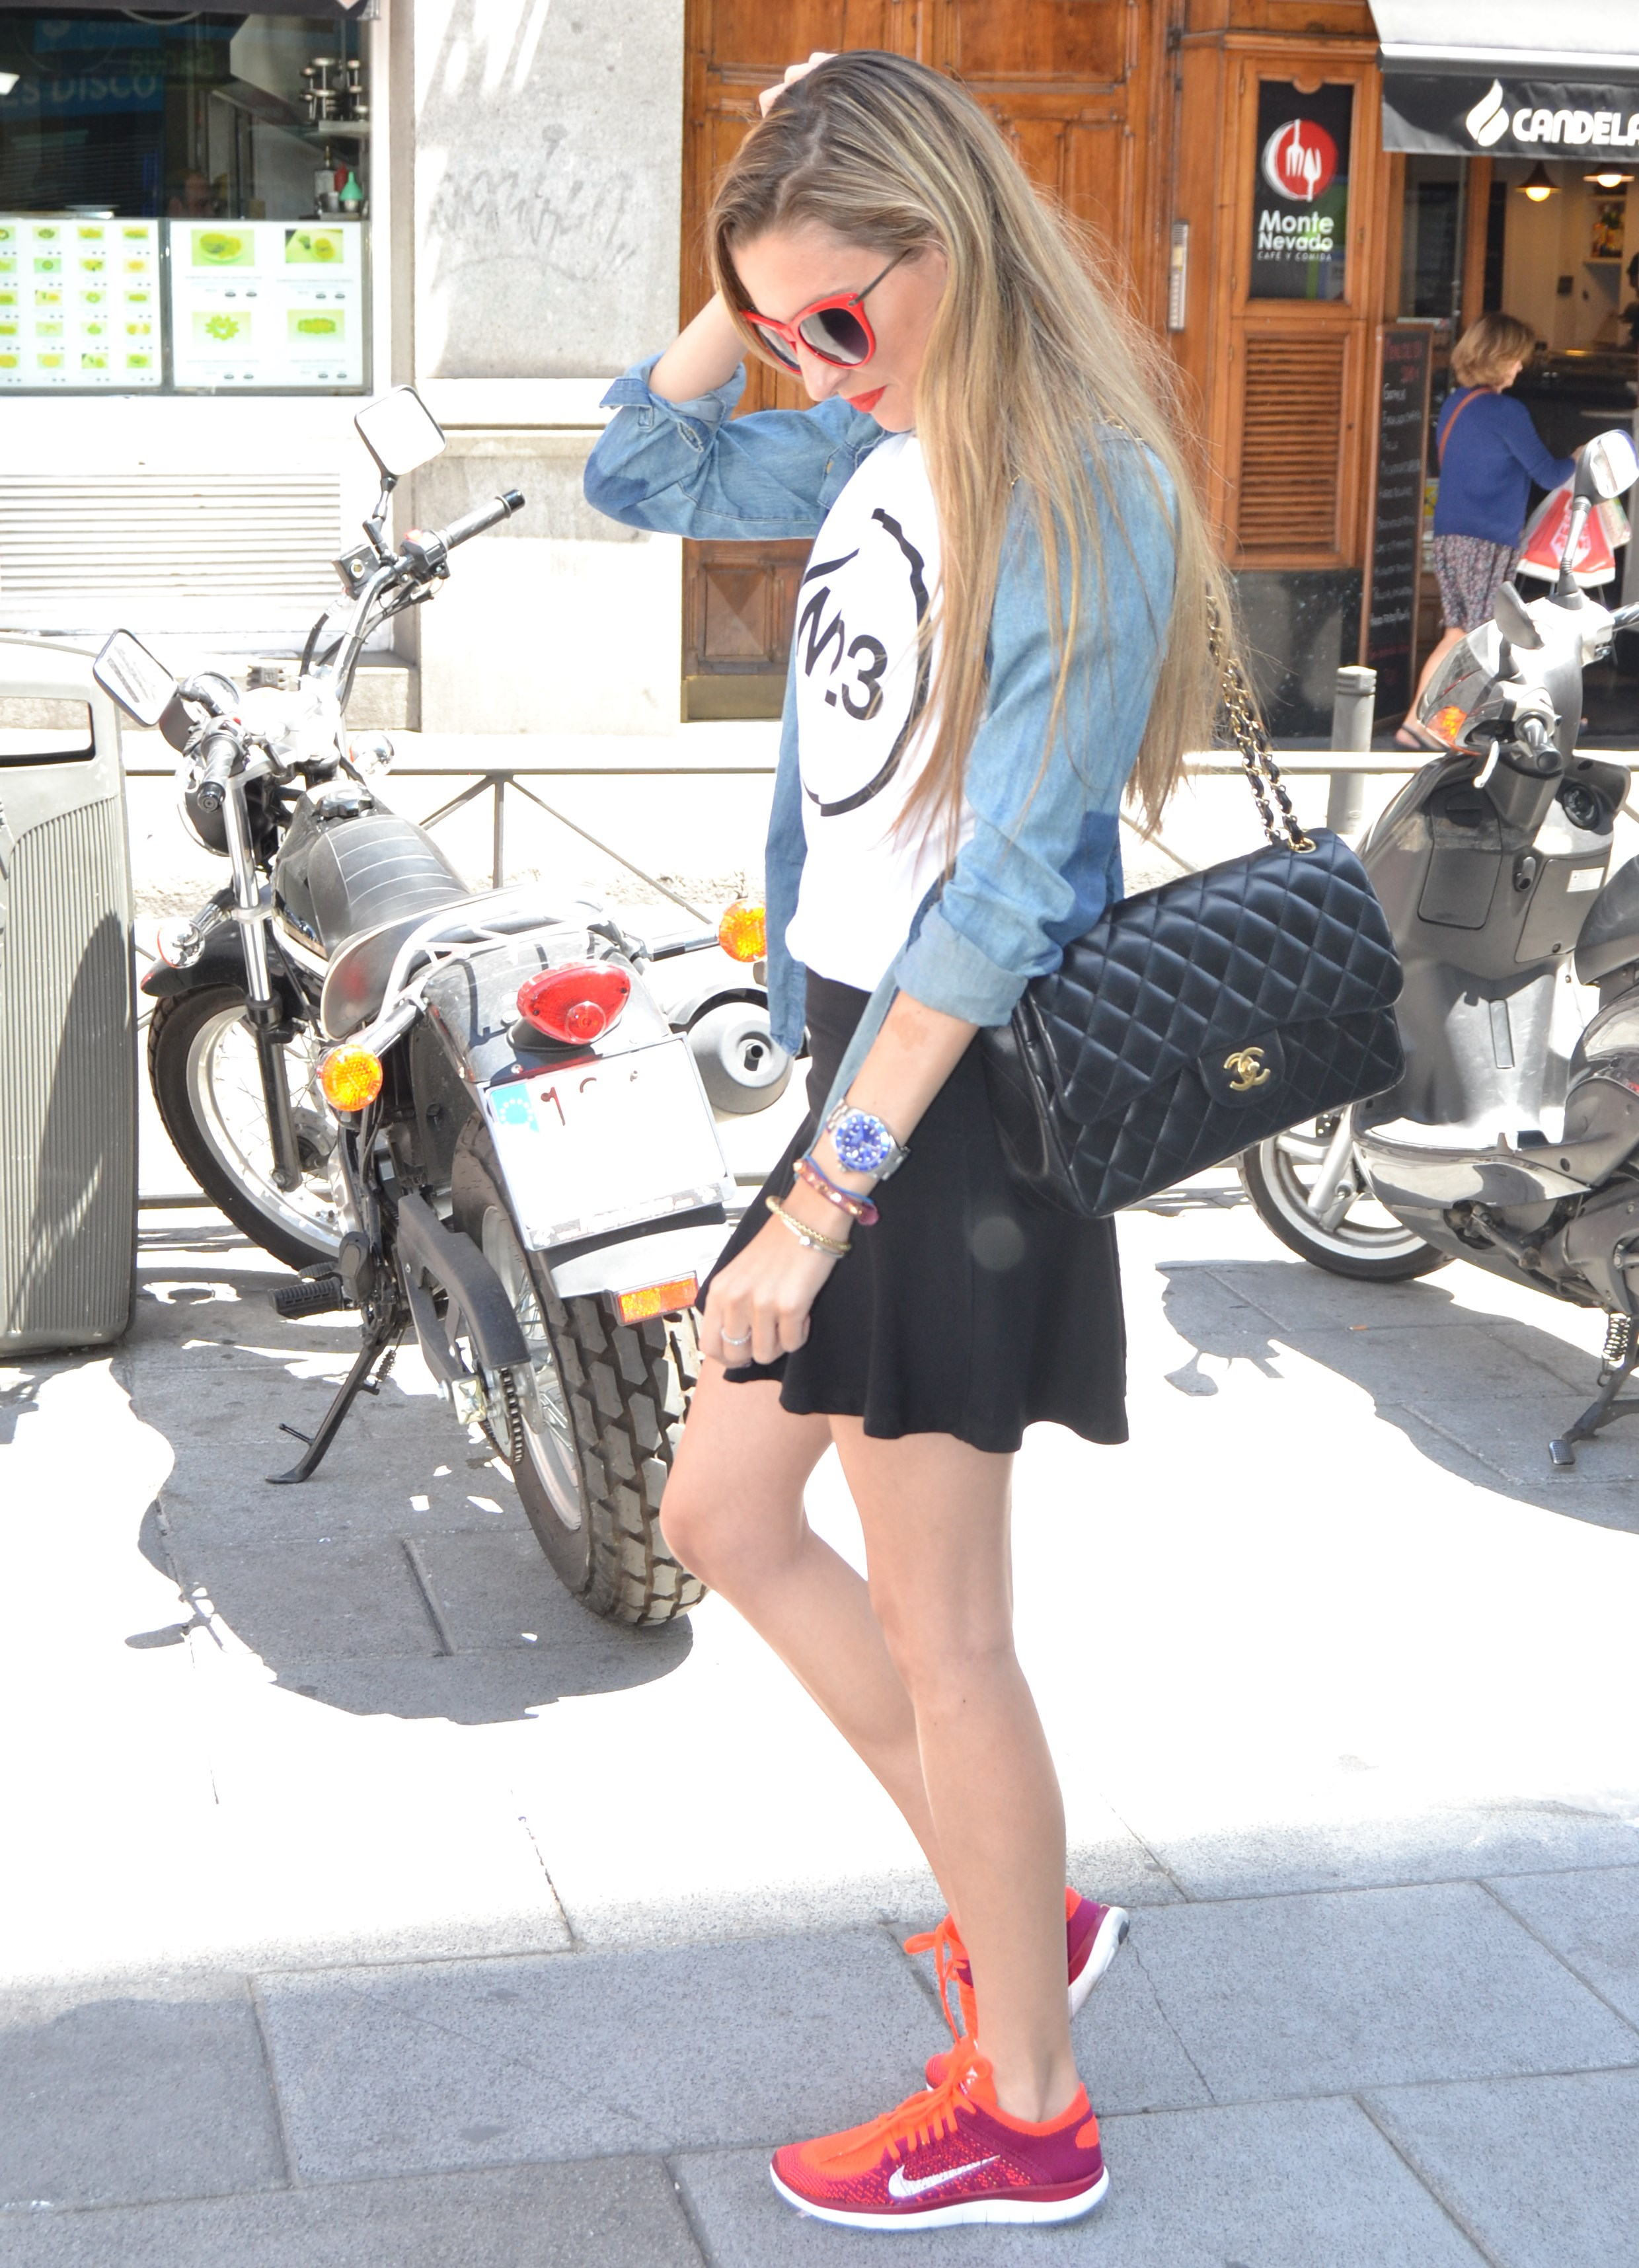 Nike_Free_FlyKnight_Sneakers_Chanel_255_Chanel_Bag_Guess_Sunglasses_Denim_Shirt_Lara_Martin_Gilarranz_Bymyheels (1)